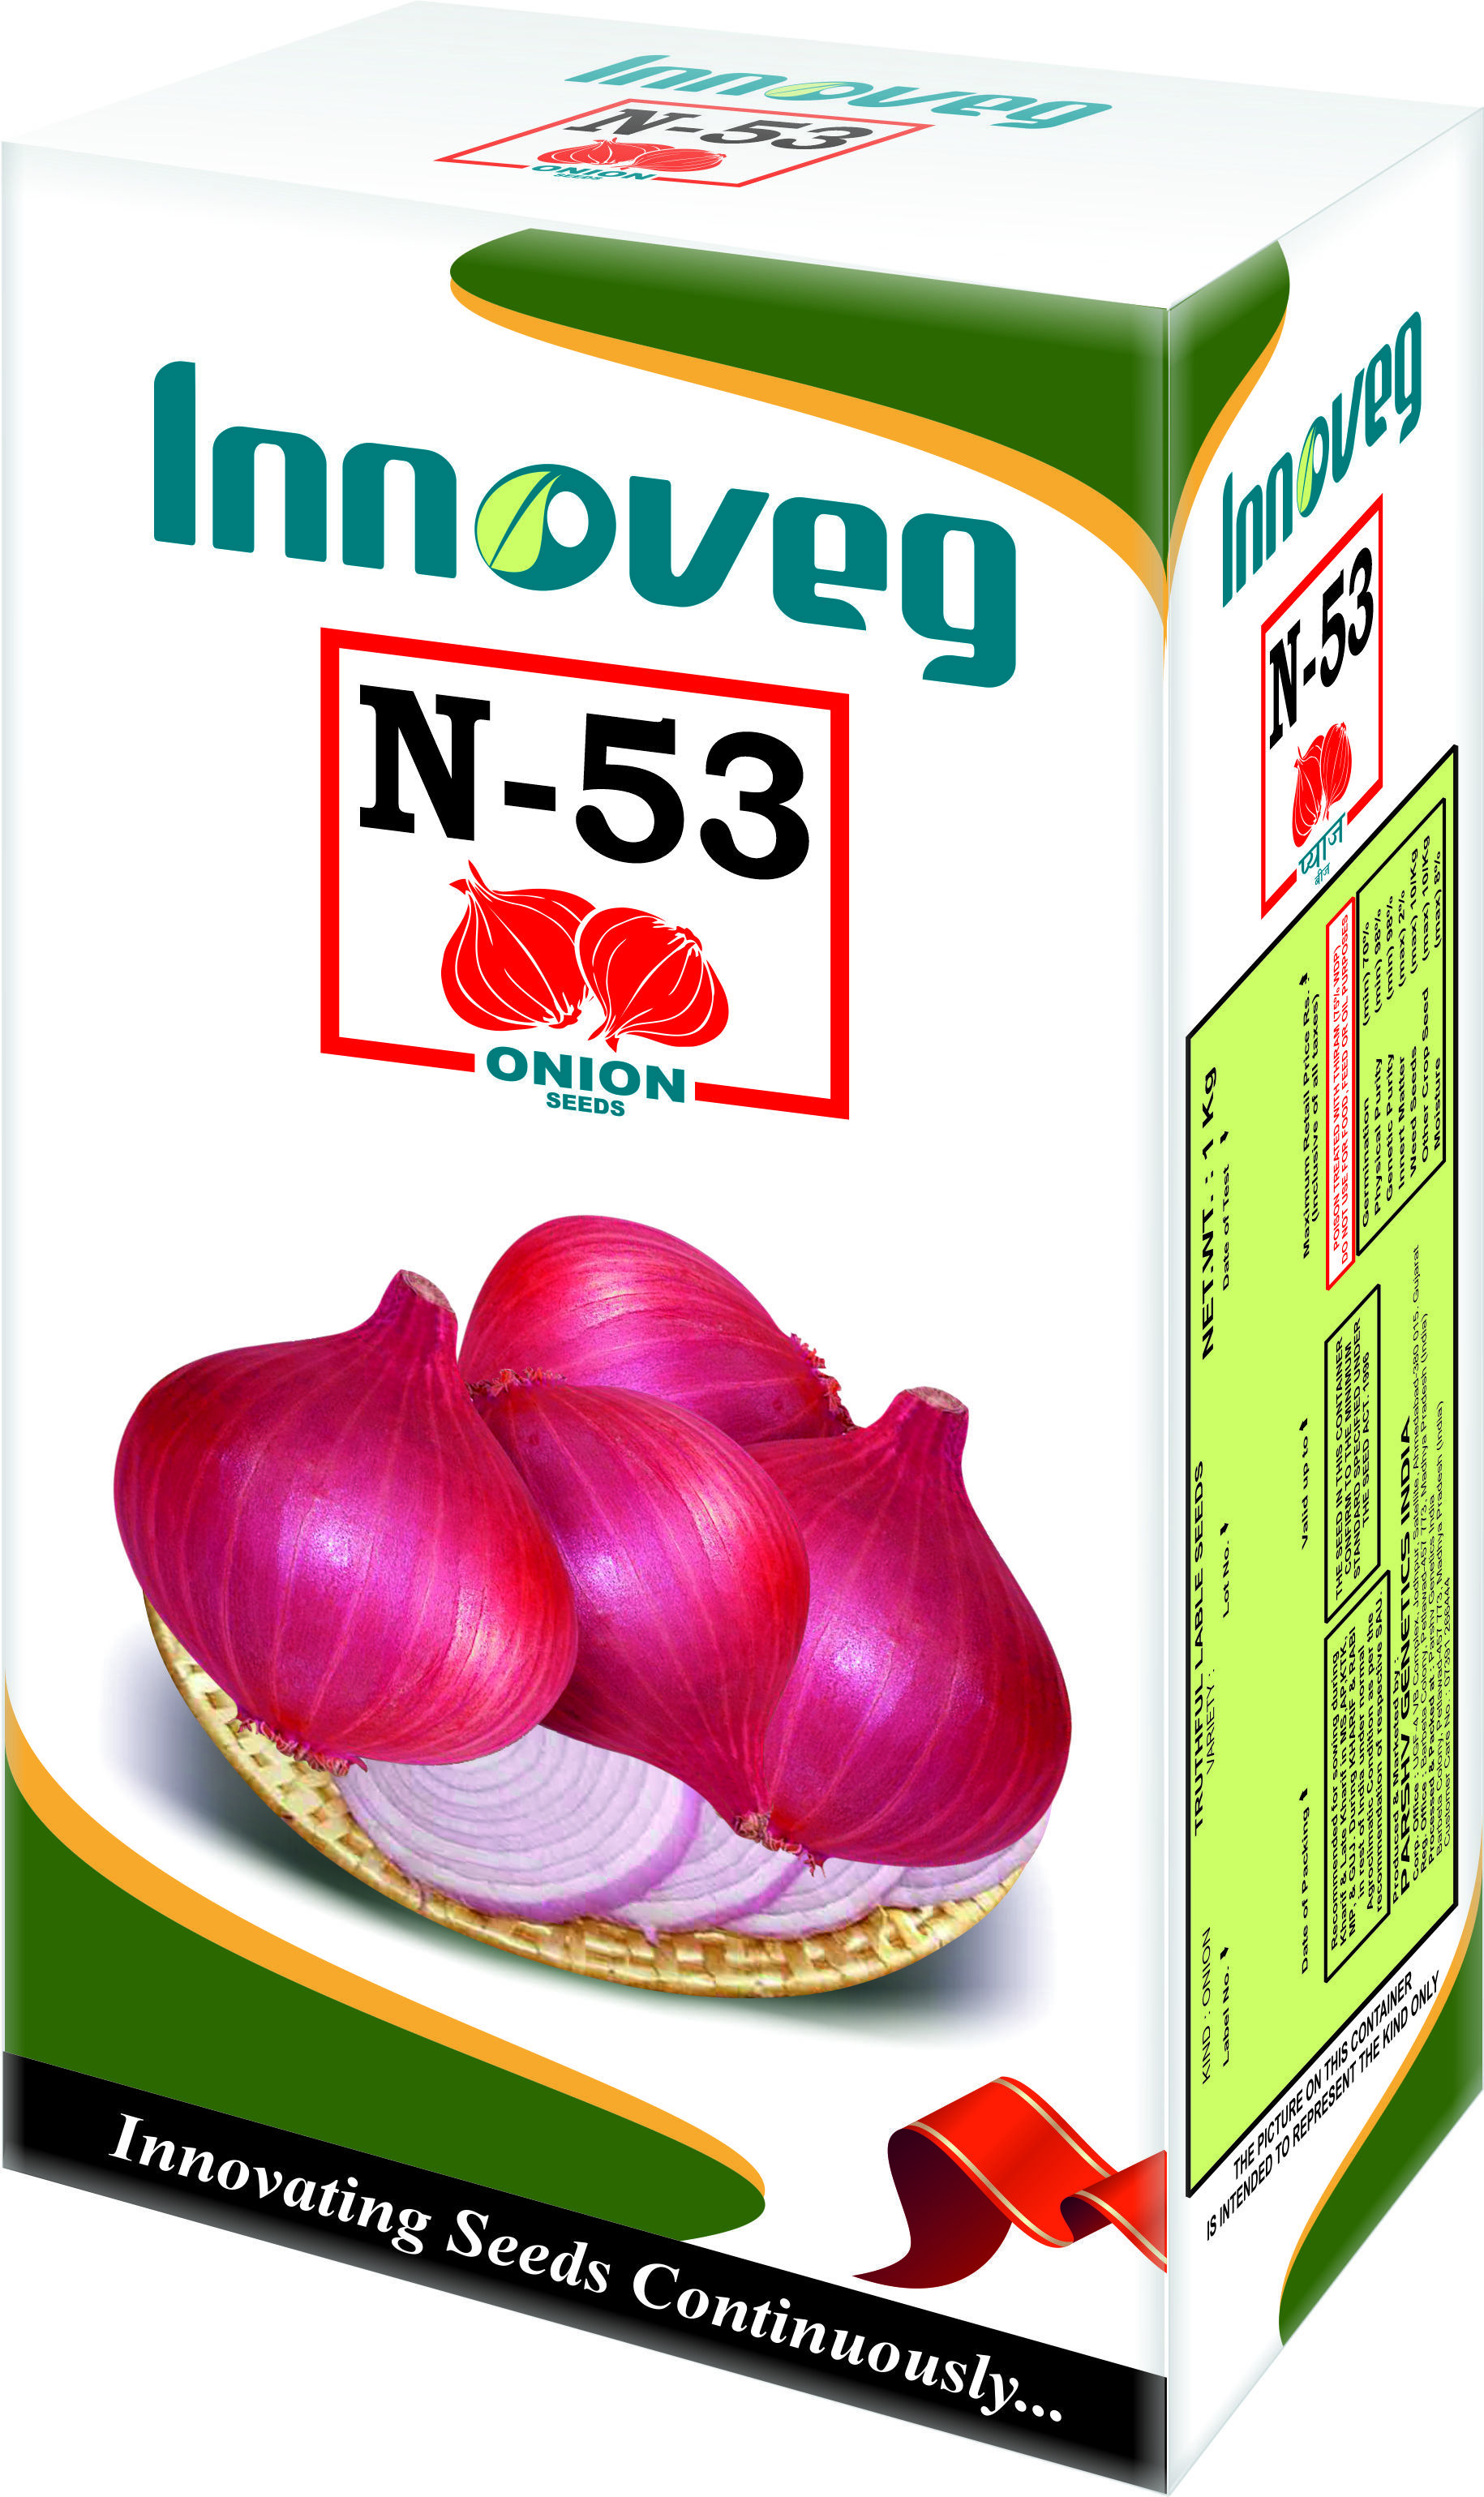 N 53 Onion Seeds InnoVeg